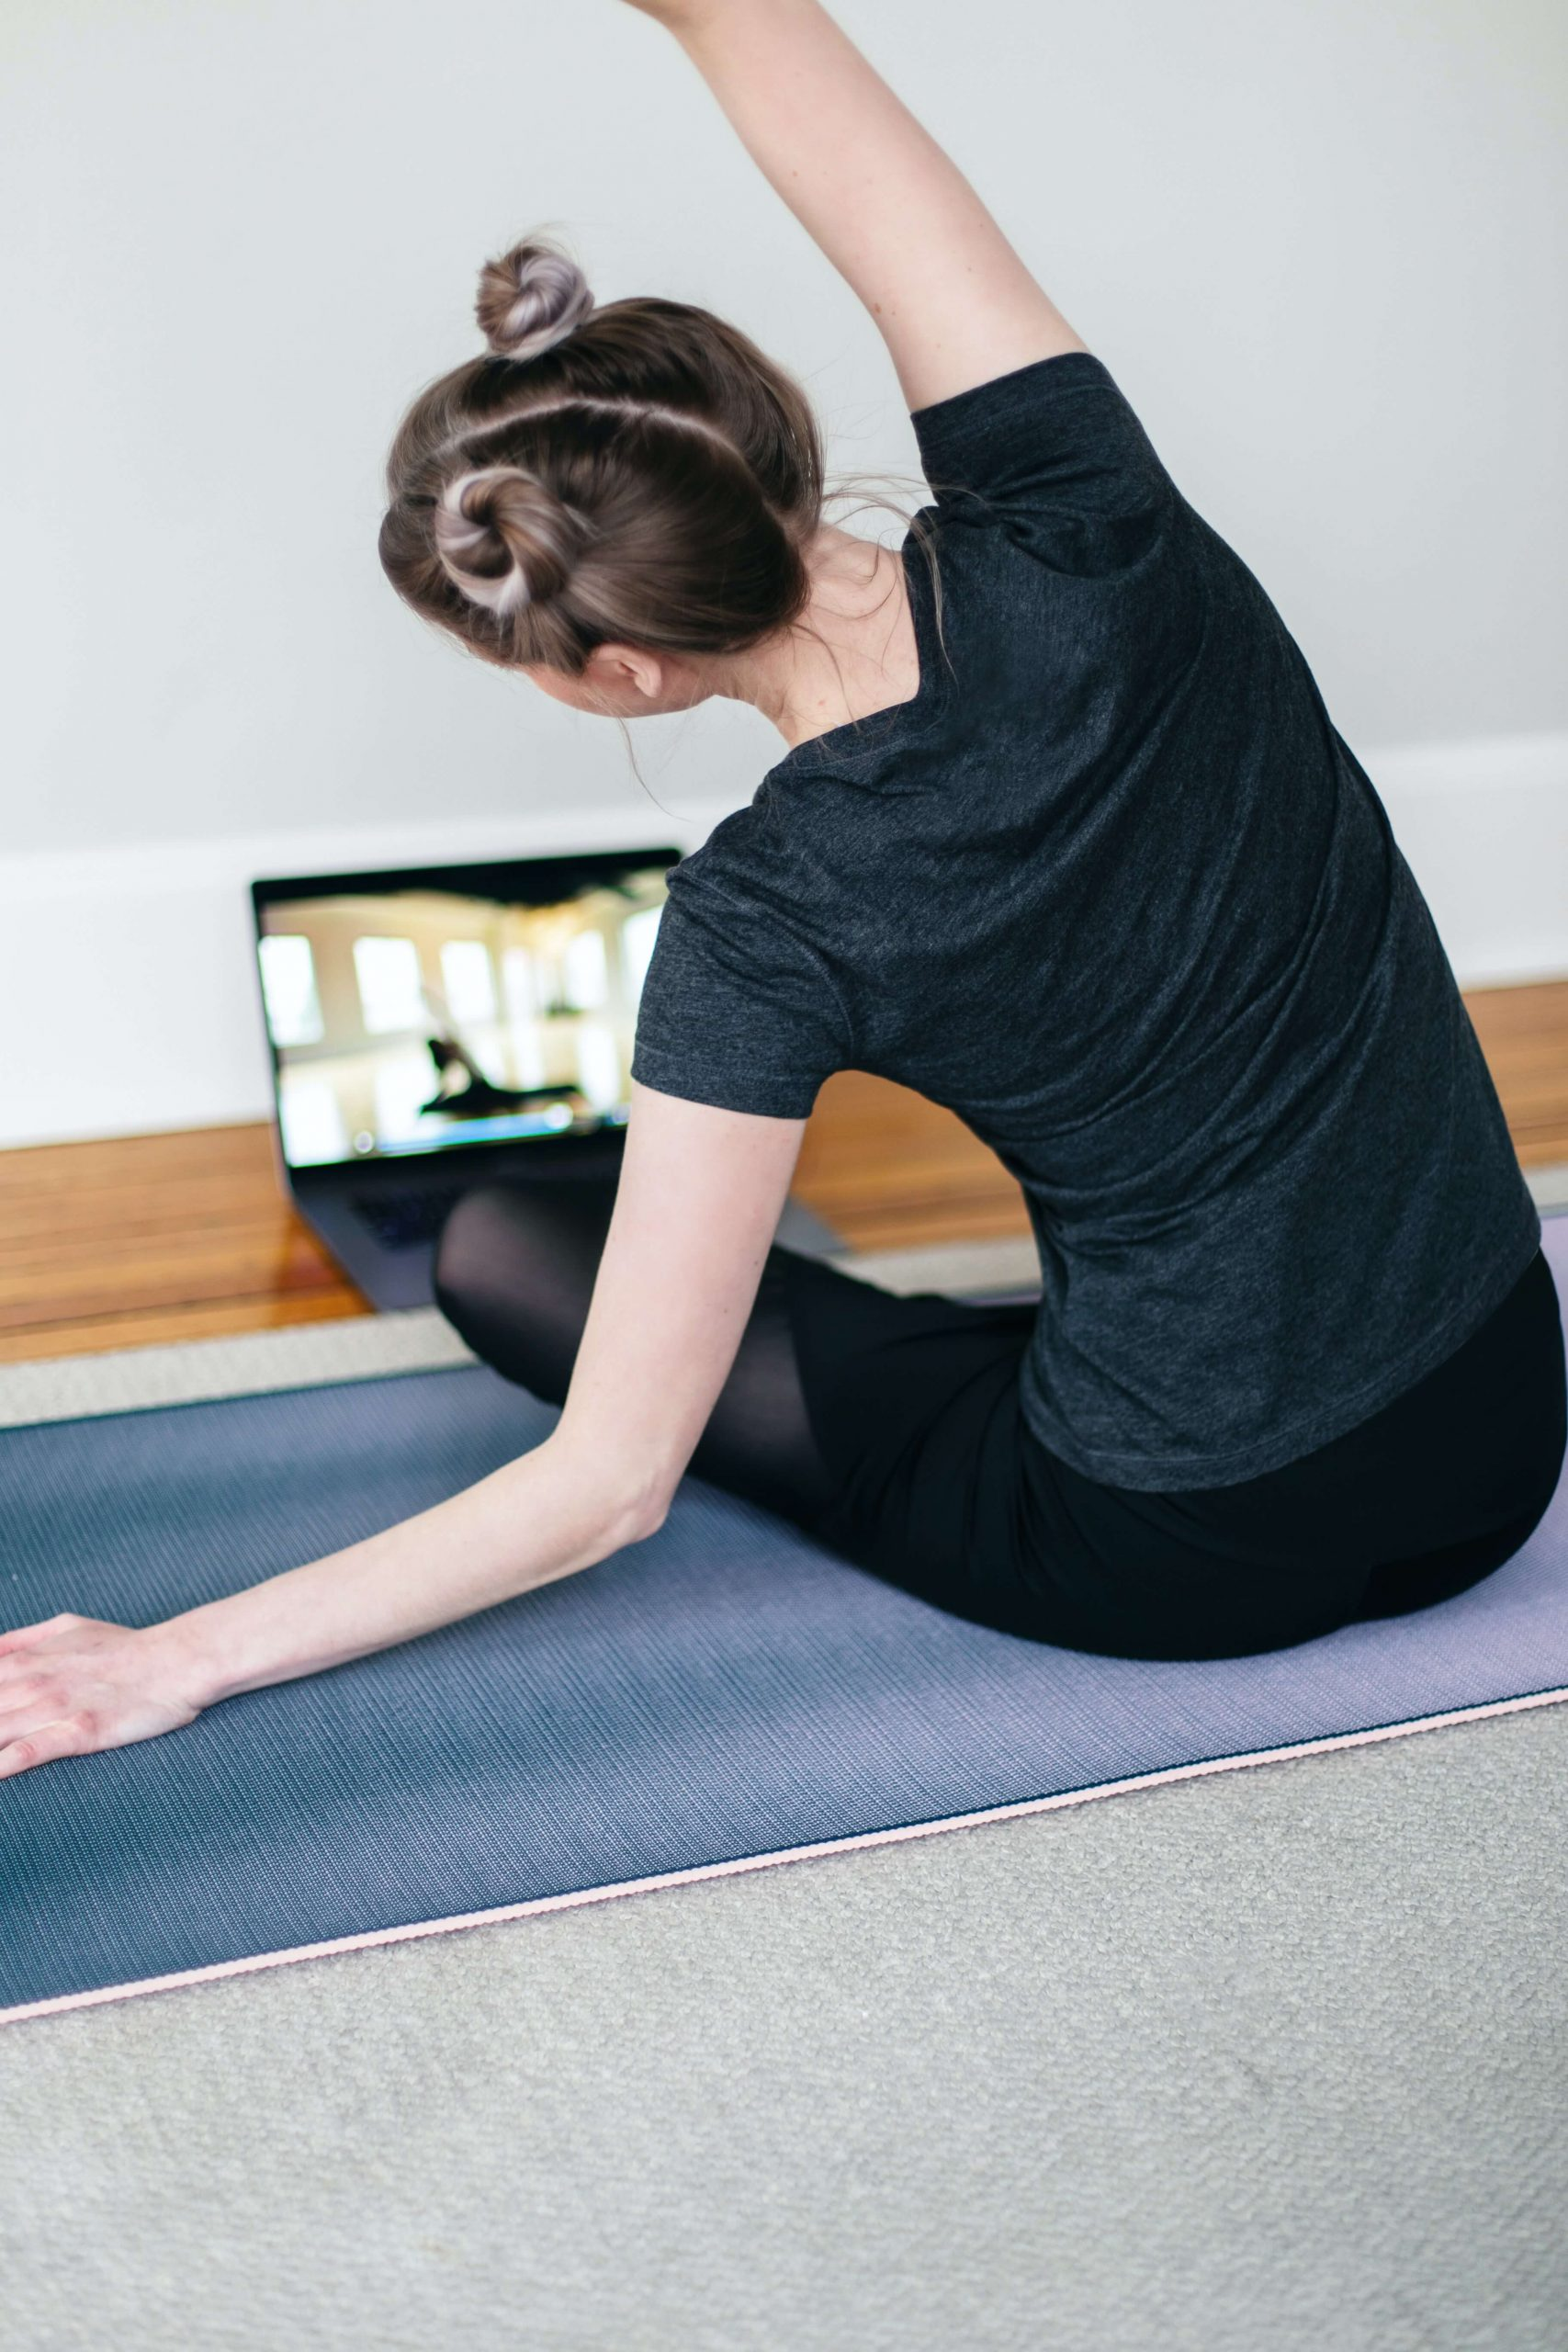 How to get the most out of your virtual yoga class ...